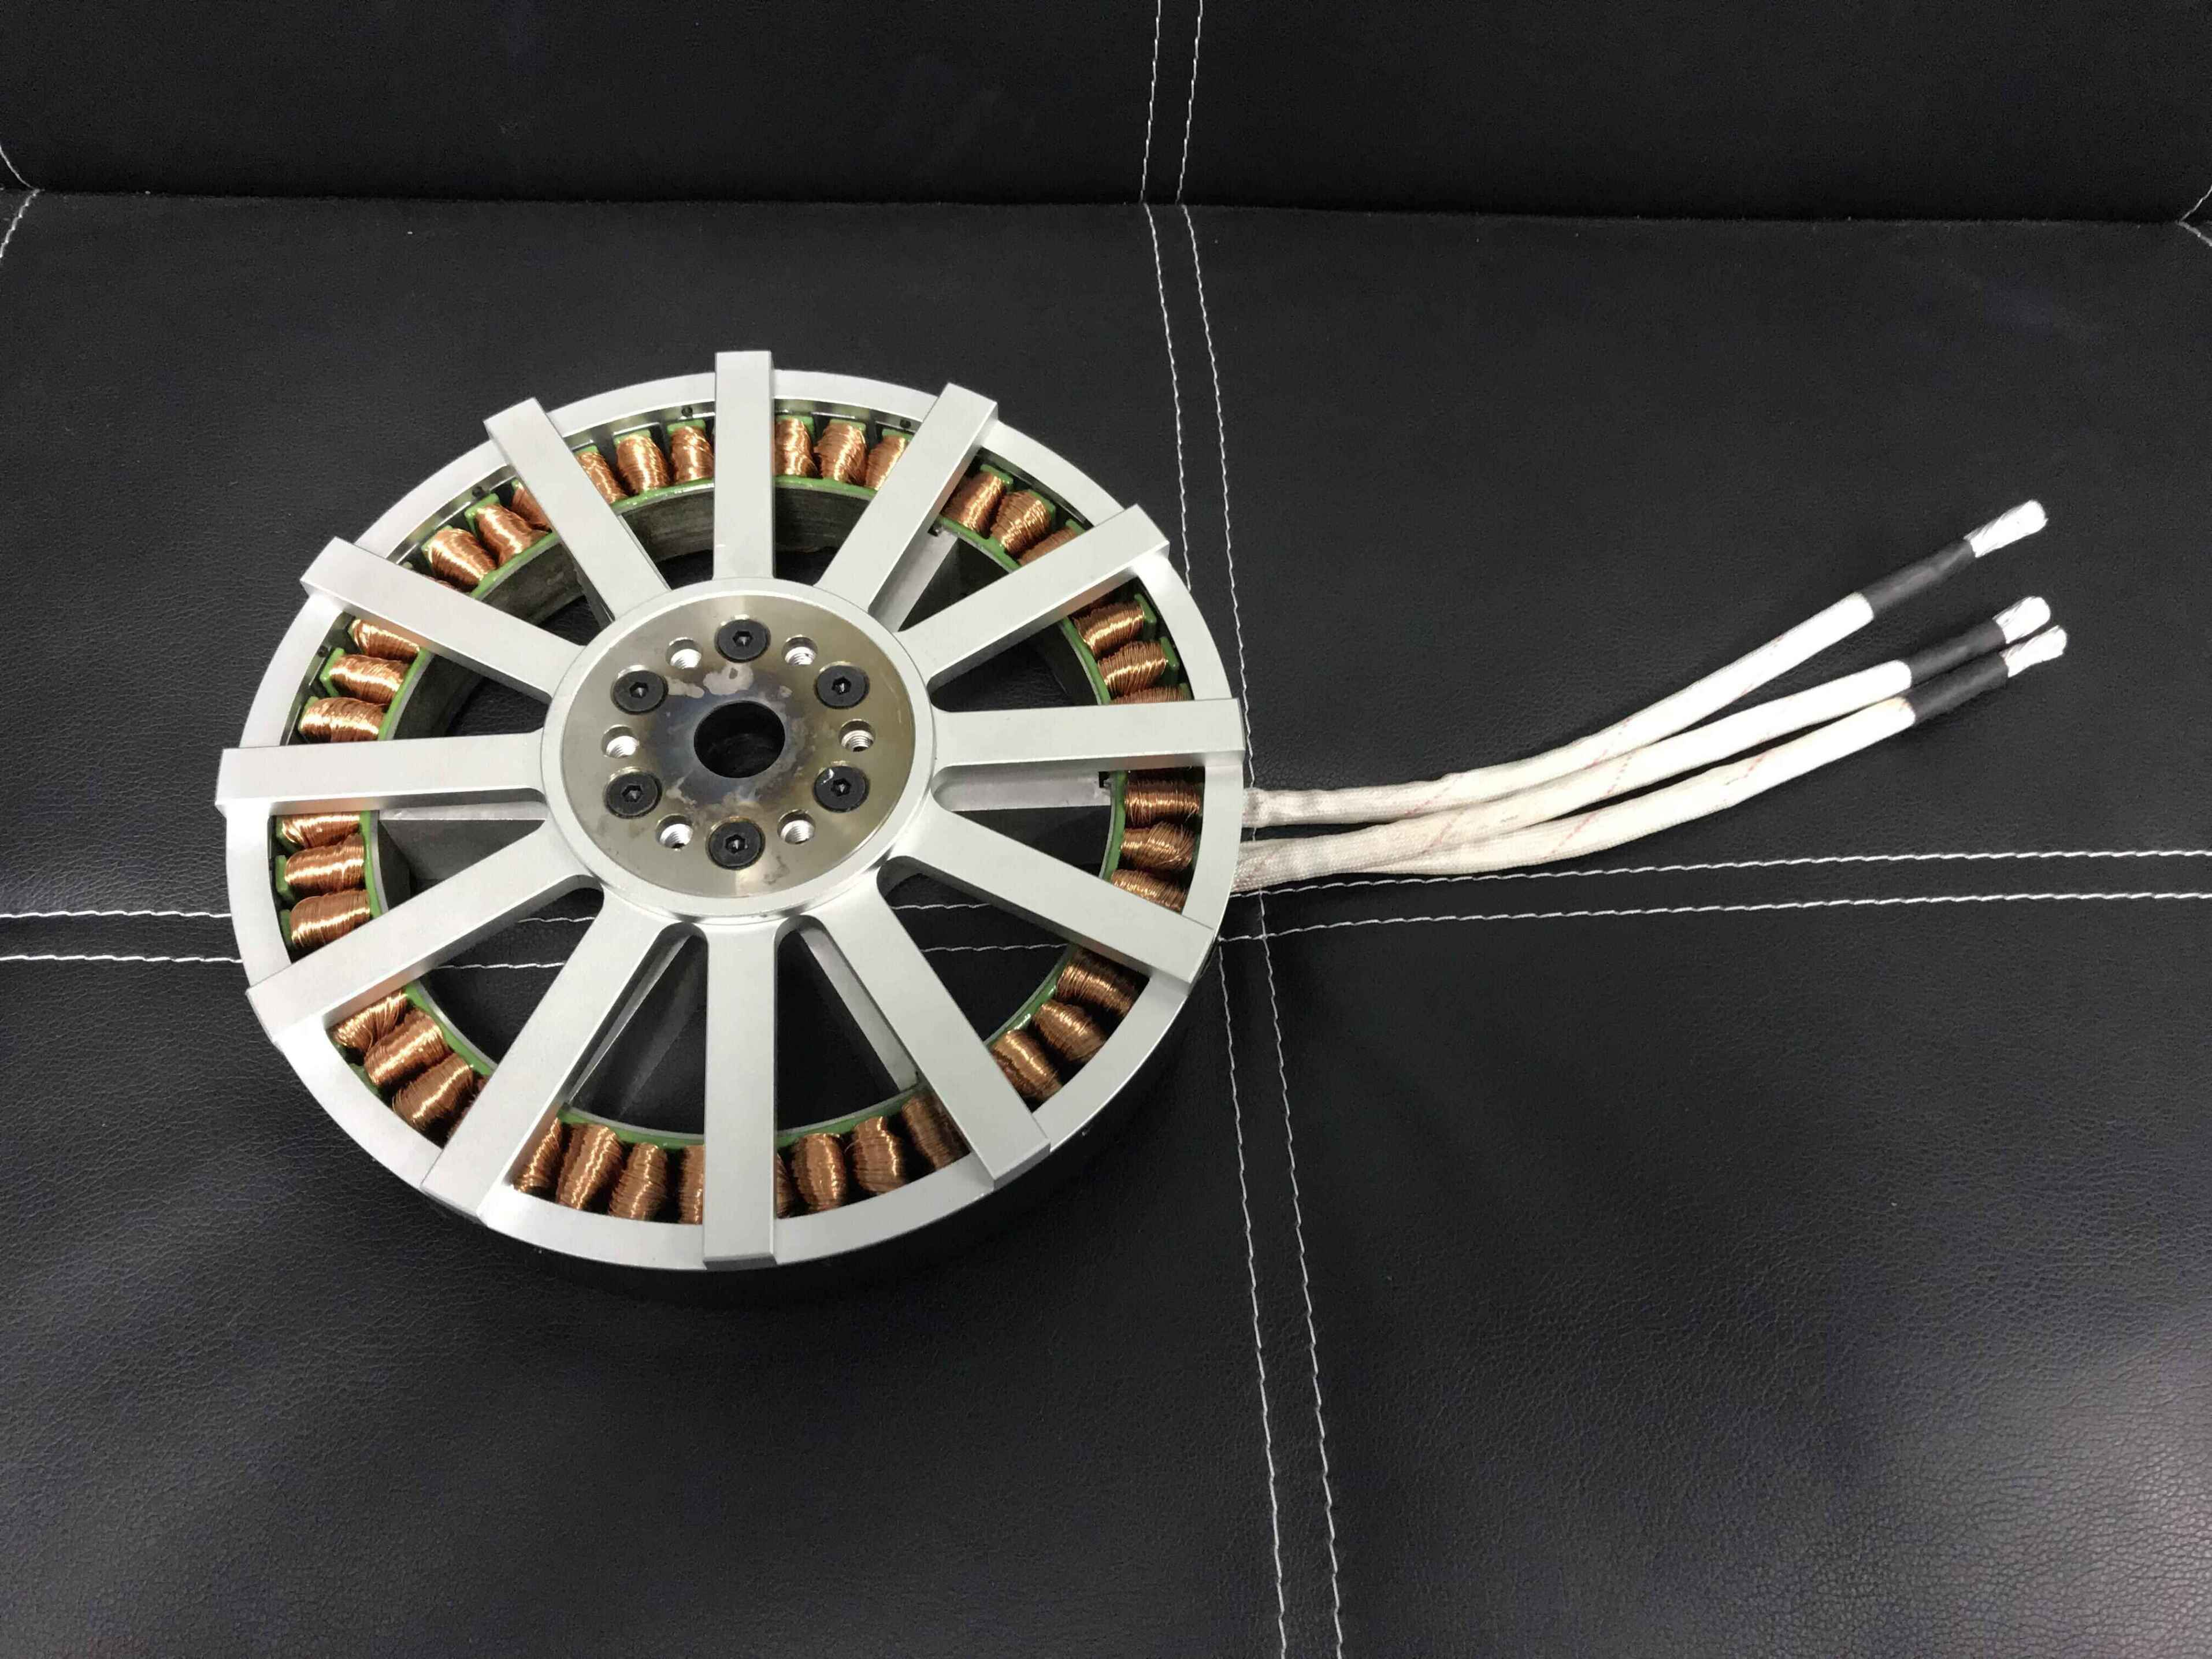 25kw 238-50 lightweight brushless motor halbach array AVAILABLE